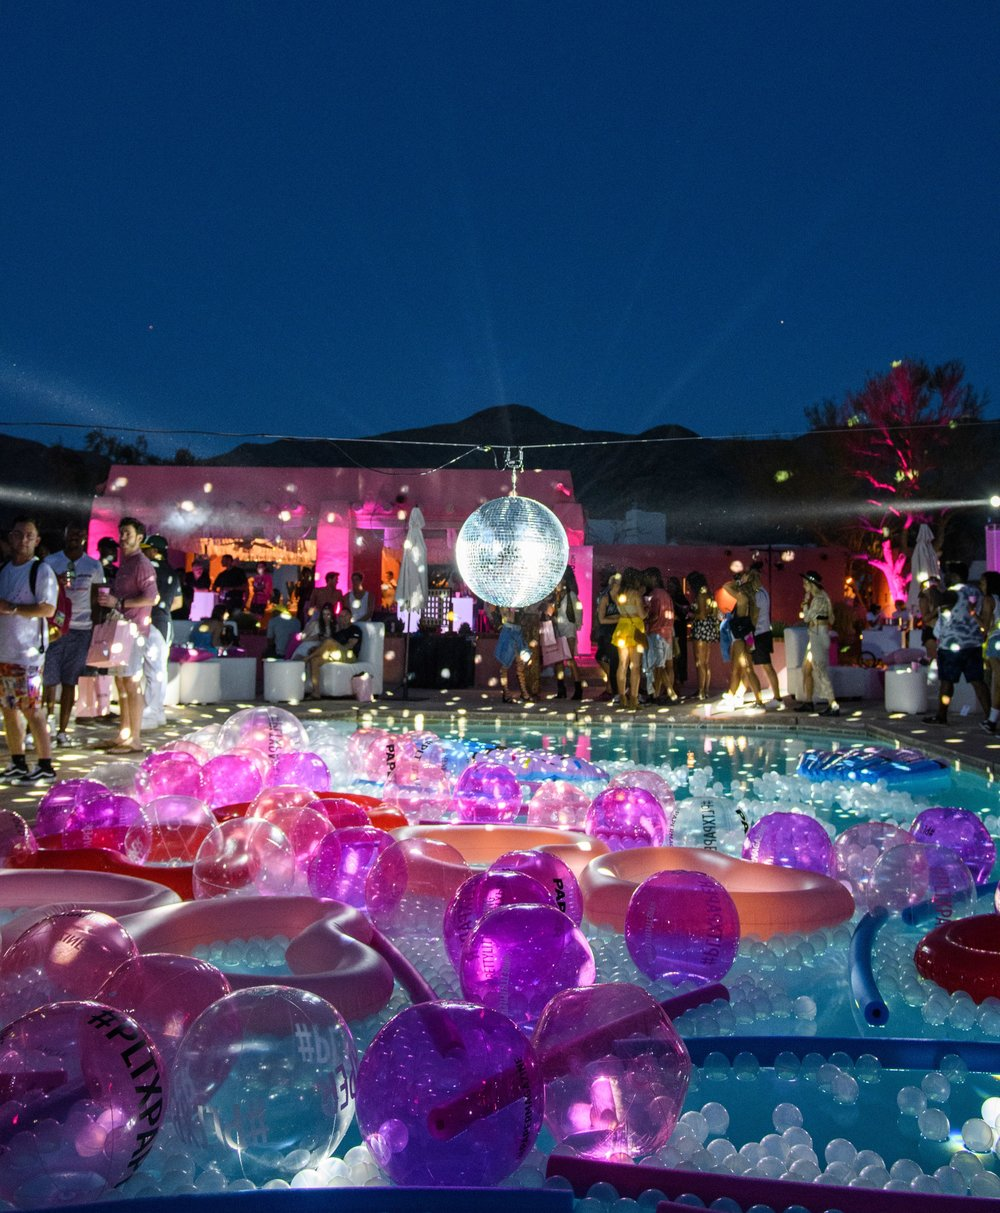 Ultimate Hollywood Coachella Poolside Party disco ball spins above the pool rays shine behind.jpg